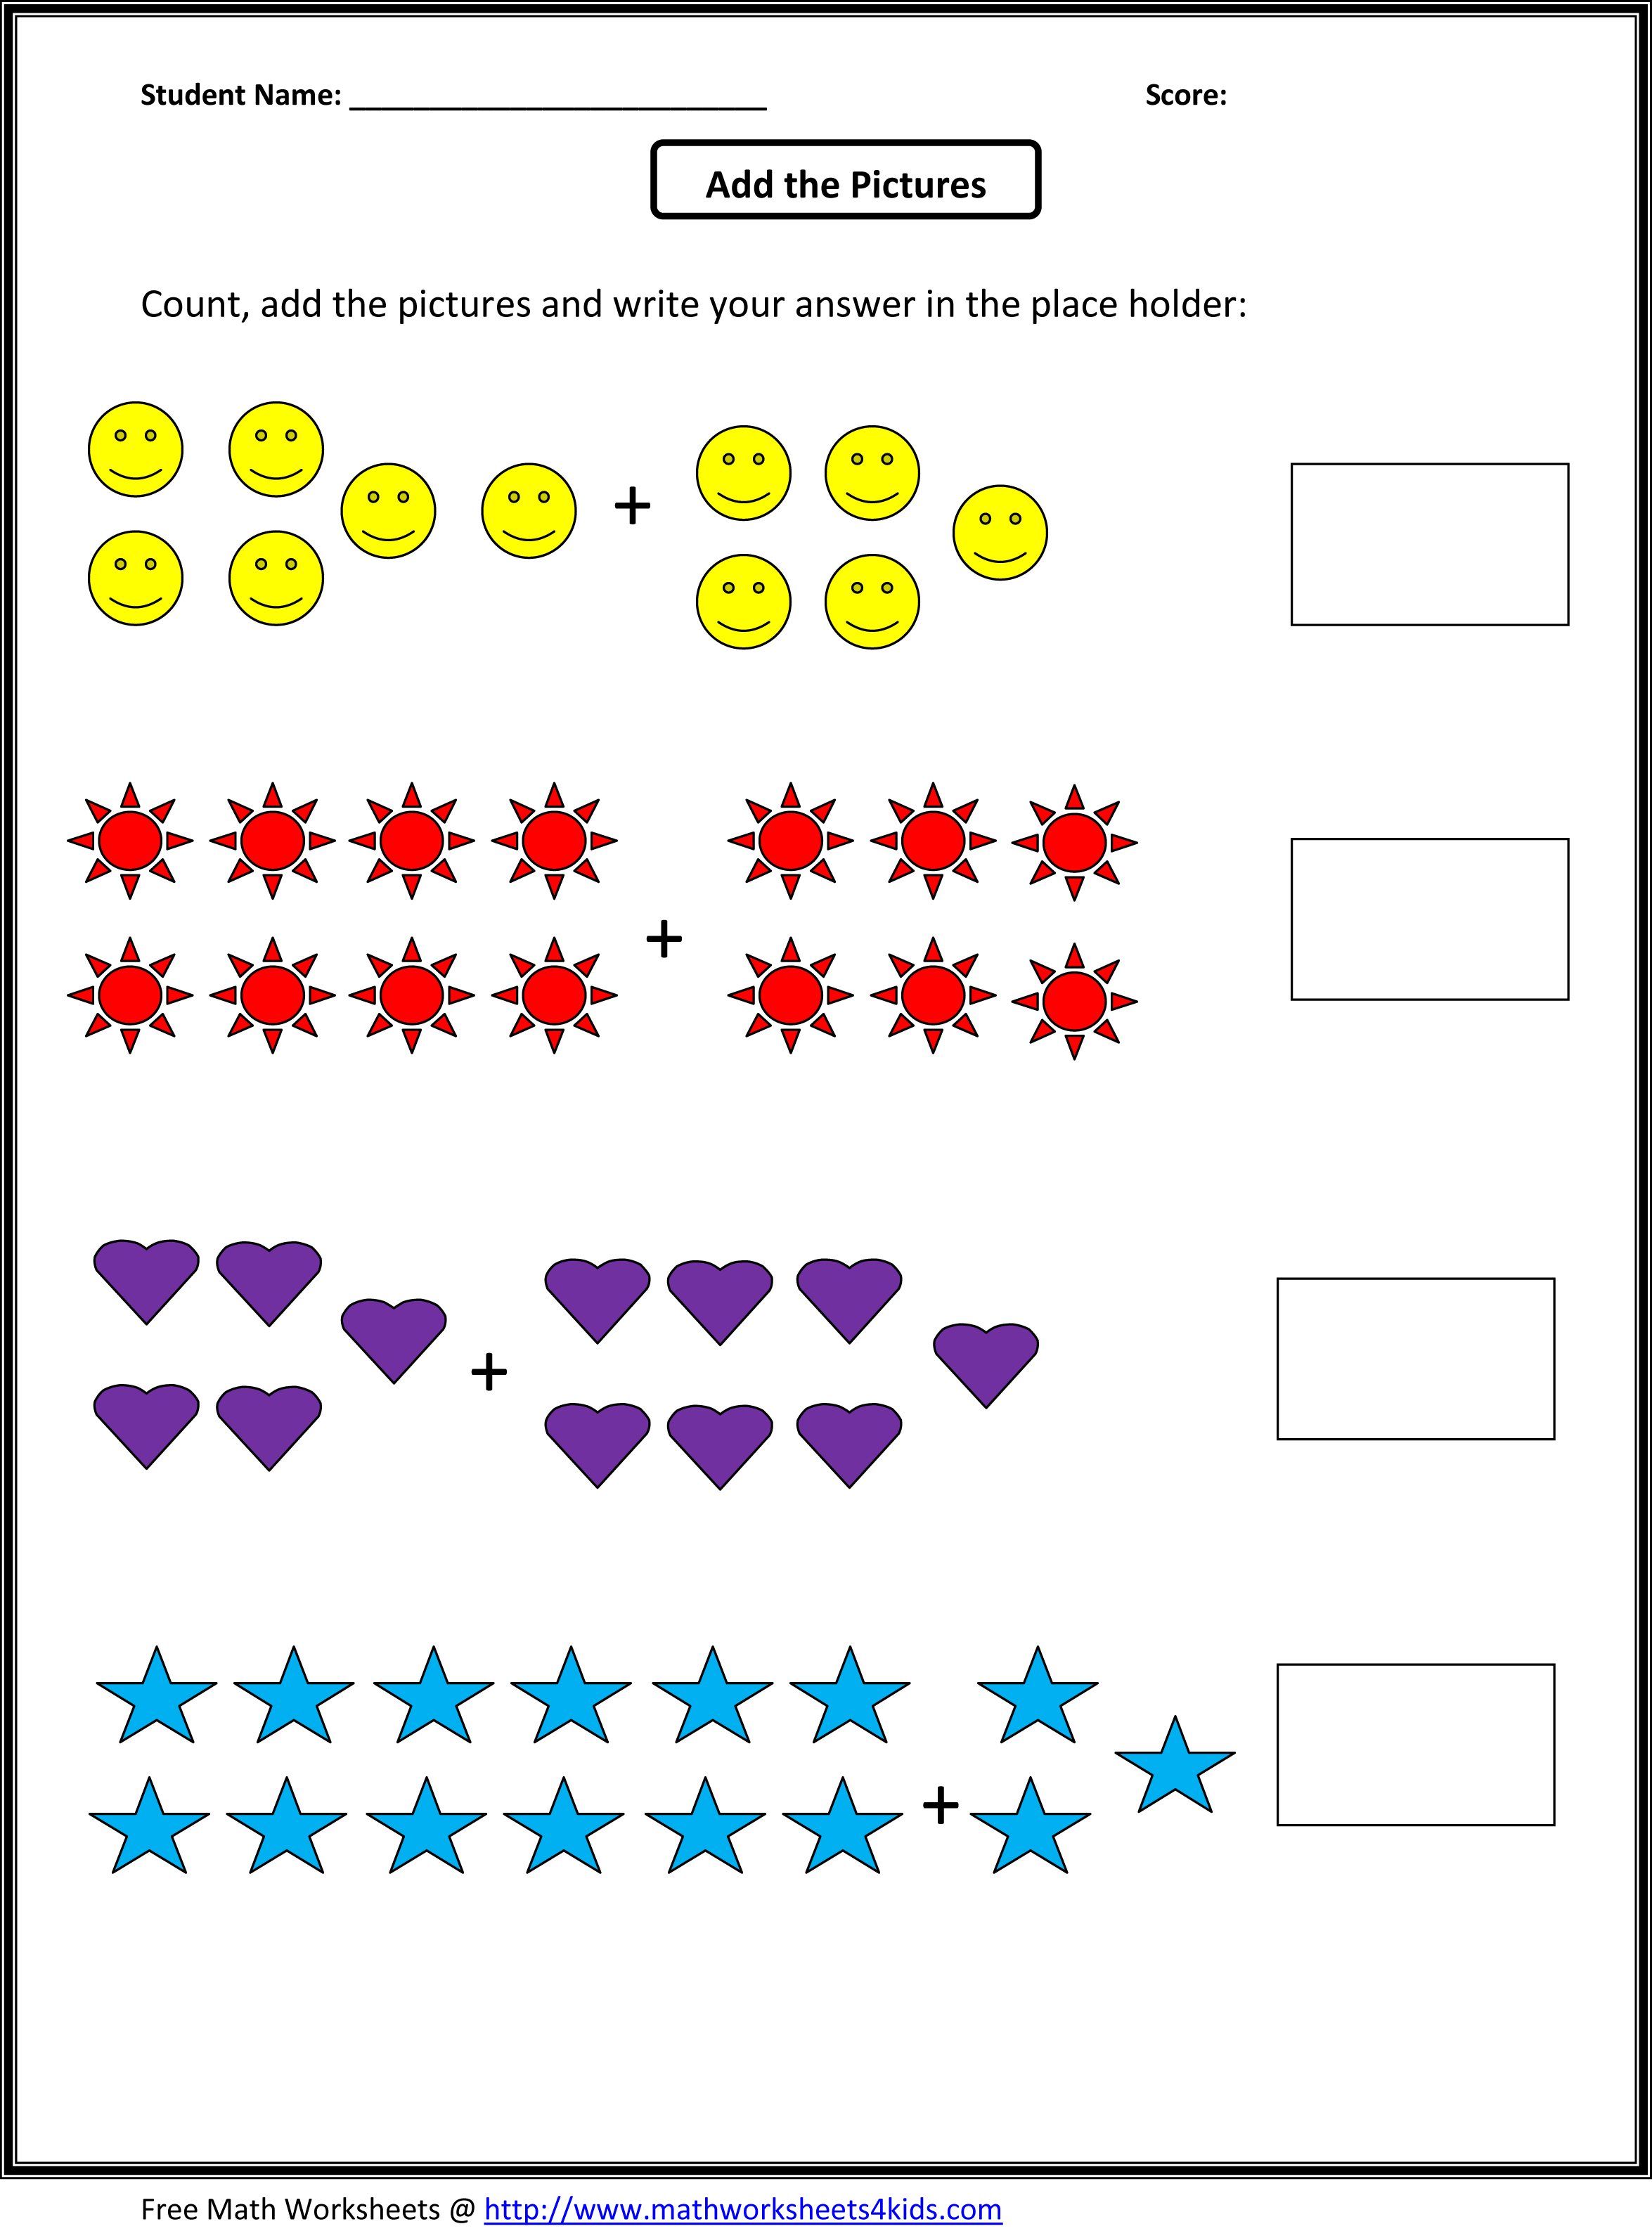 Weirdmailus  Gorgeous Grade  Maths Worksheet  Reocurent With Excellent Math Worksheets For St Grade Free  Reocurent With Adorable Worksheets On Slope Intercept Form Also Compound Nouns Worksheets In Addition Greater And Less Than Signs Worksheets And  Days Of School Math Worksheets As Well As Worksheets For Algebra  Additionally Percent Worksheets Grade  From Reocurentcom With Weirdmailus  Excellent Grade  Maths Worksheet  Reocurent With Adorable Math Worksheets For St Grade Free  Reocurent And Gorgeous Worksheets On Slope Intercept Form Also Compound Nouns Worksheets In Addition Greater And Less Than Signs Worksheets From Reocurentcom